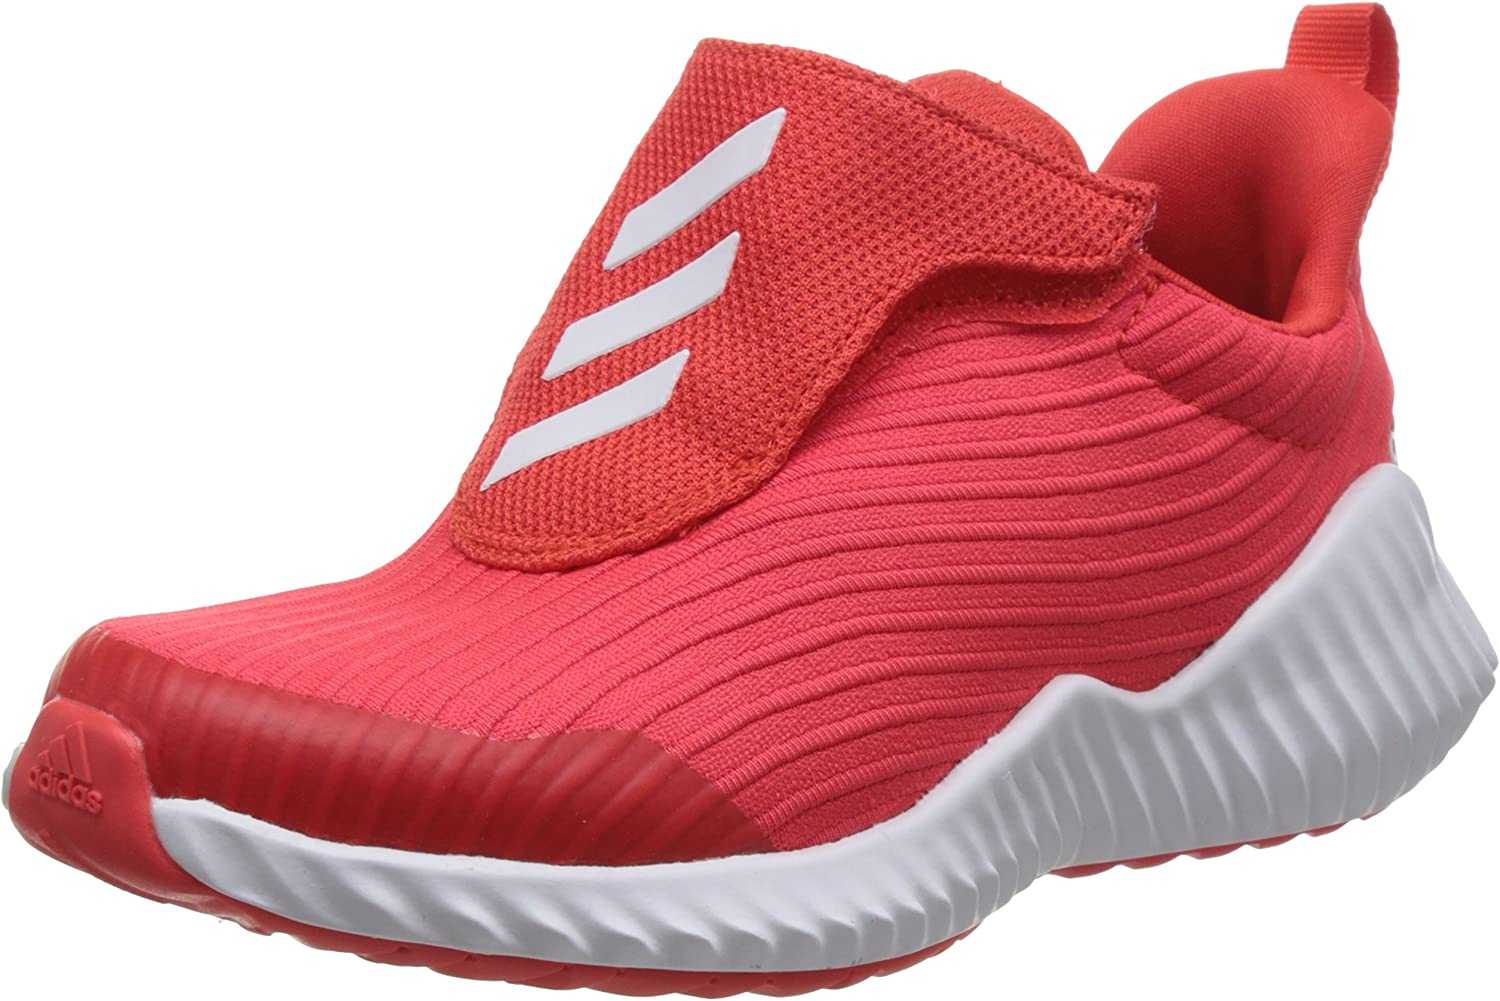 Adidas Unisex Adults' Fortarun Ac K Fitness shoes